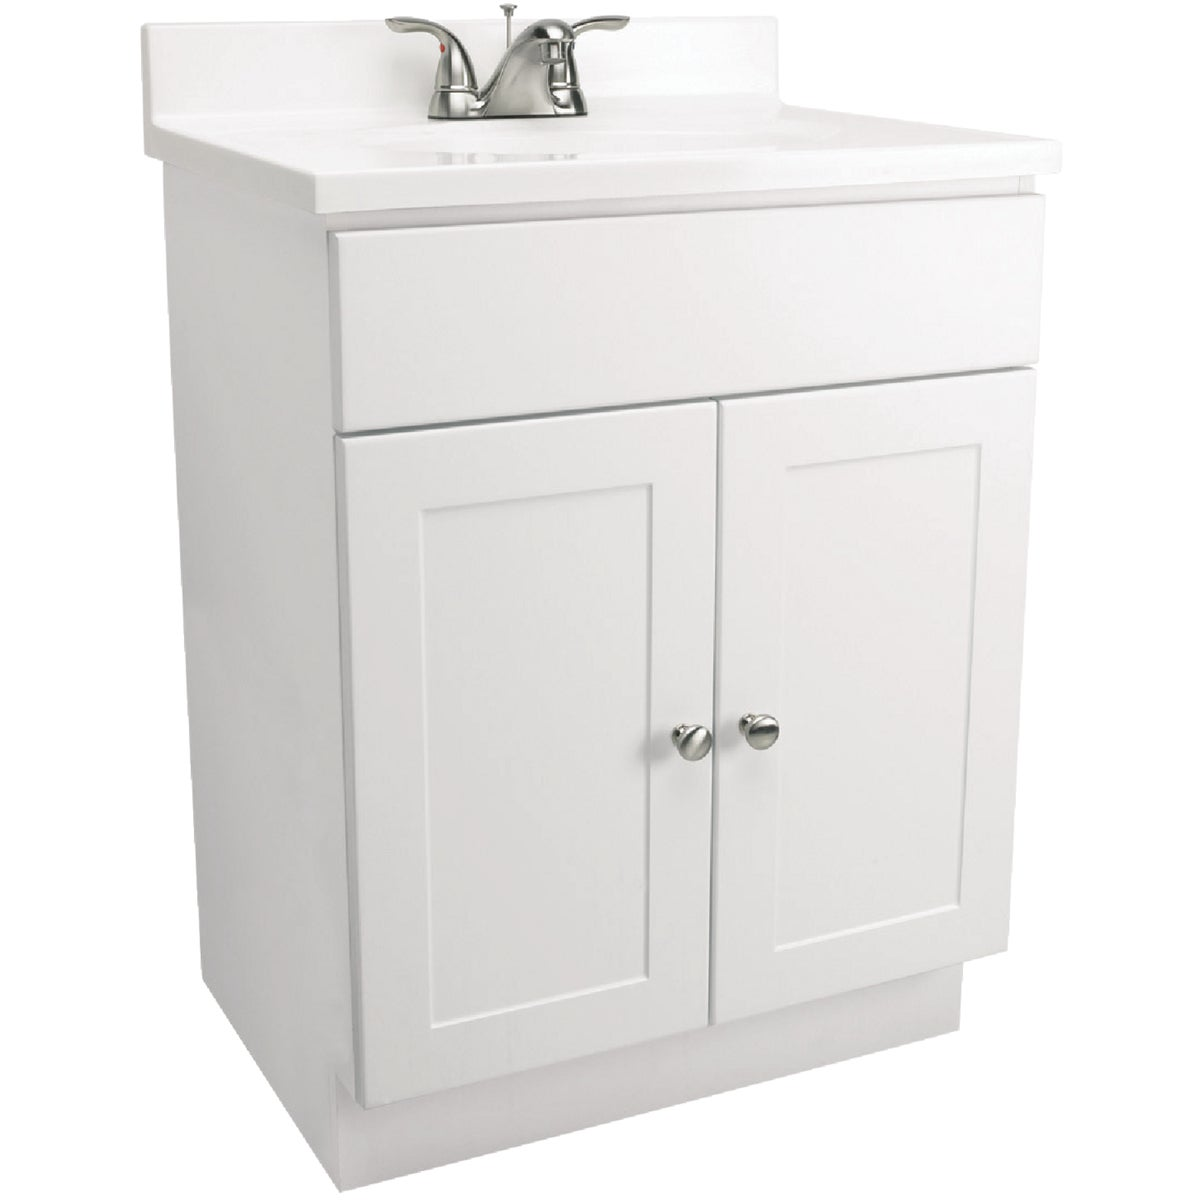 WHITE COMBO VANITY - 541607 by Design House  Dhi